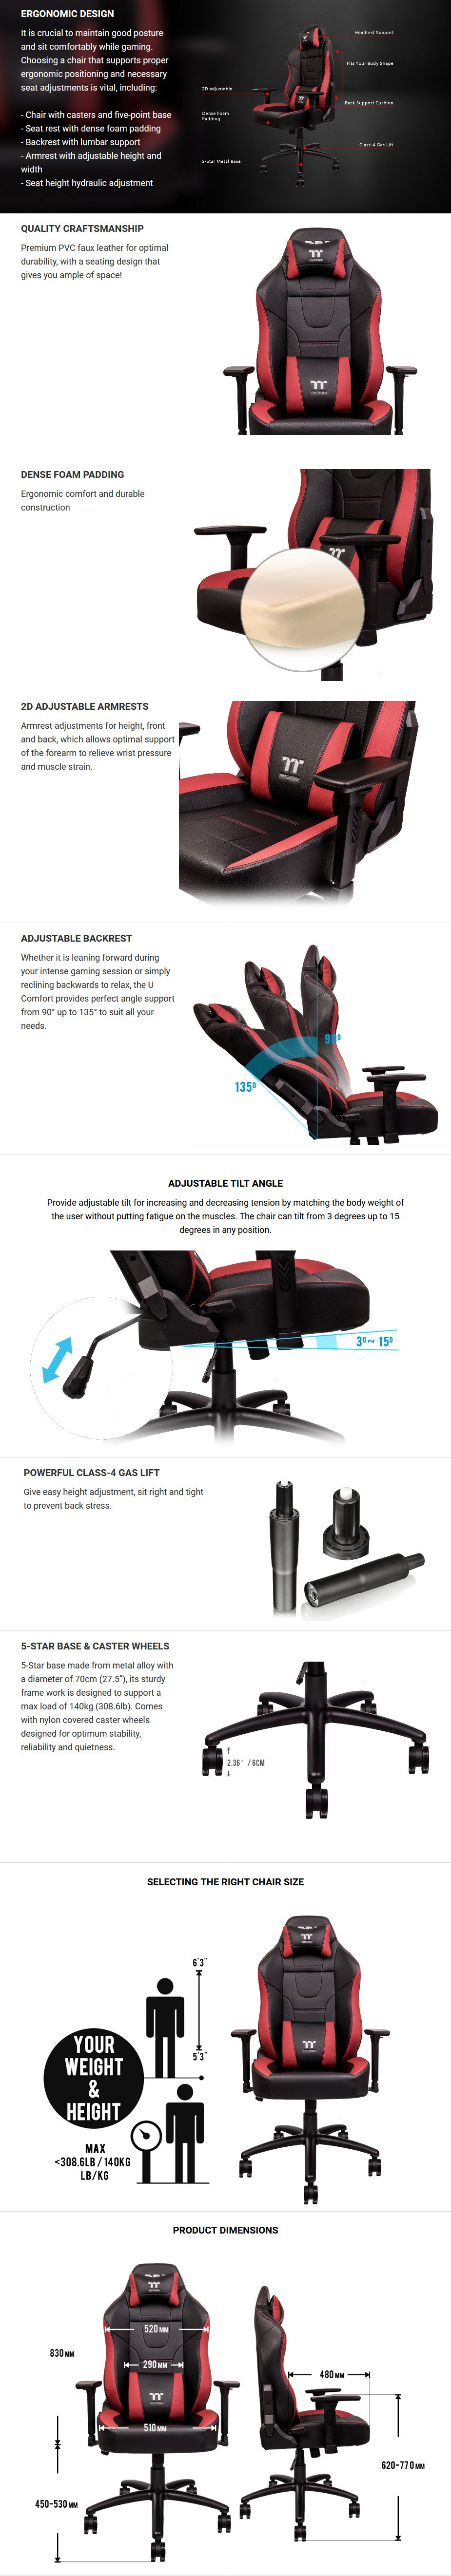 Thermaltake Gaming U Comfort Office/Gaming Chair - Black/Red - Overview 1